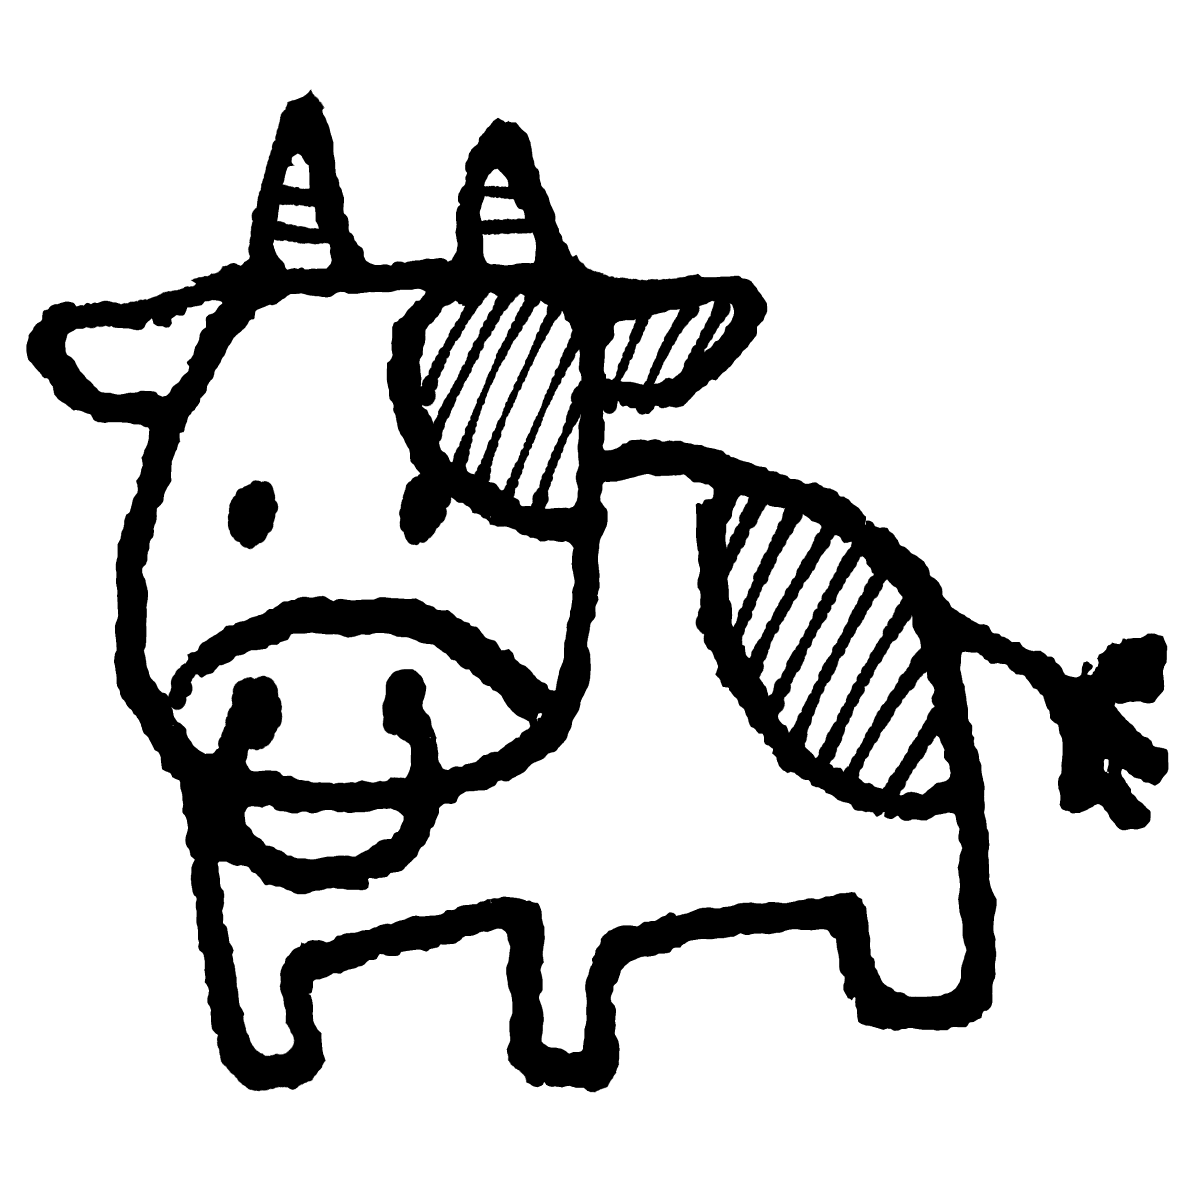 立つ牛のイラスト / Standing cow Illustration